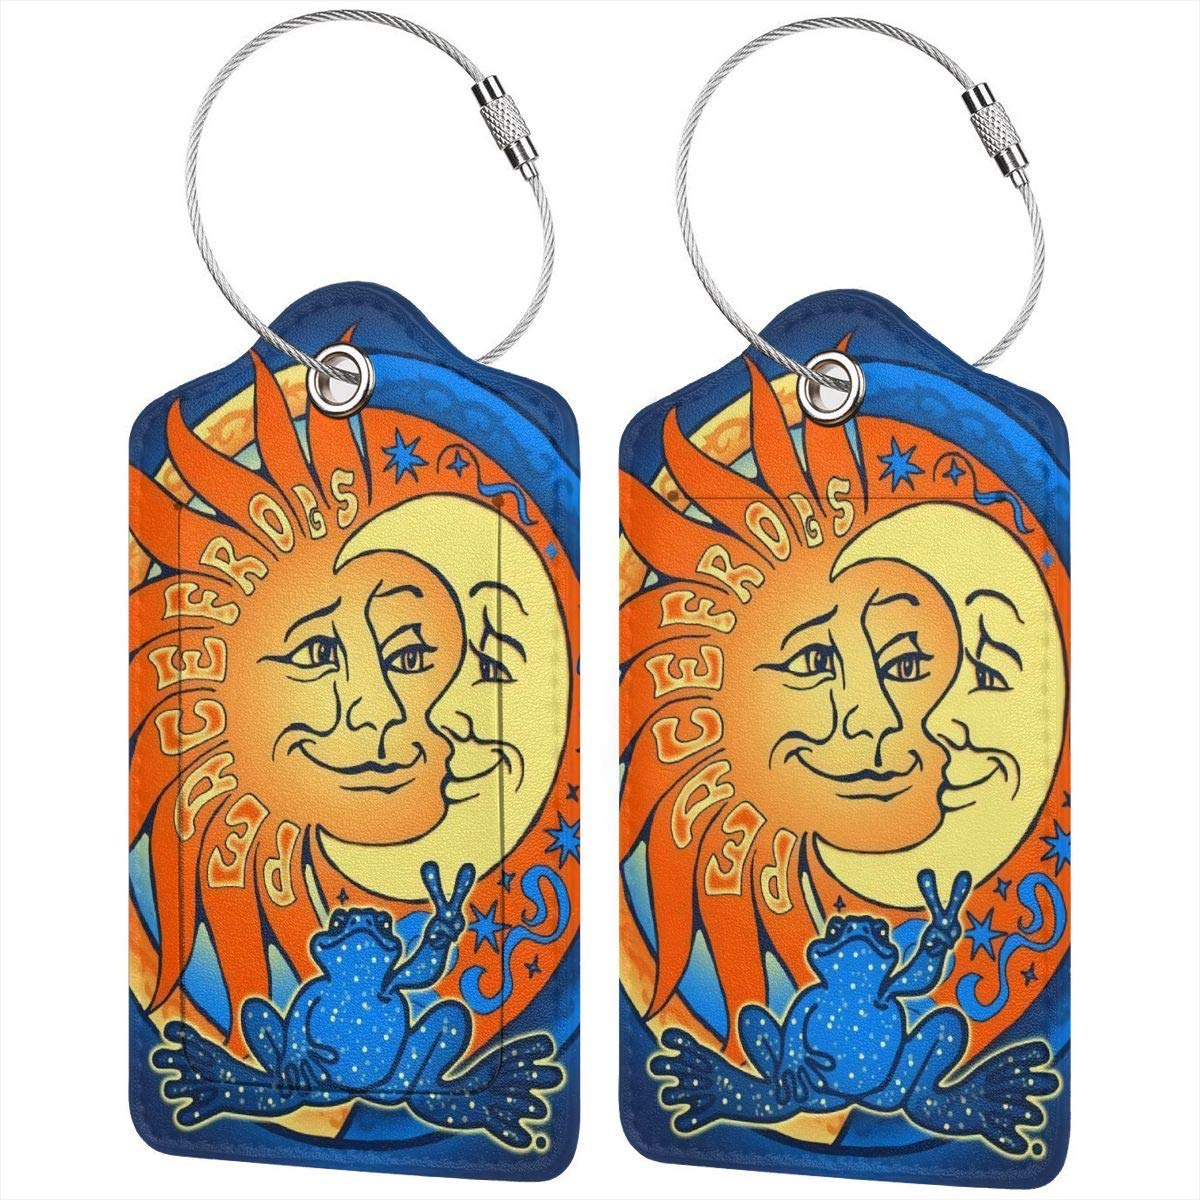 Godzigod Travel Luggage Tags PU Leather Bag Tags Suitcase Baggage Label Handbag Tag with Full Back Privacy Cover Steel Loops Sun and Moon Peace Frog